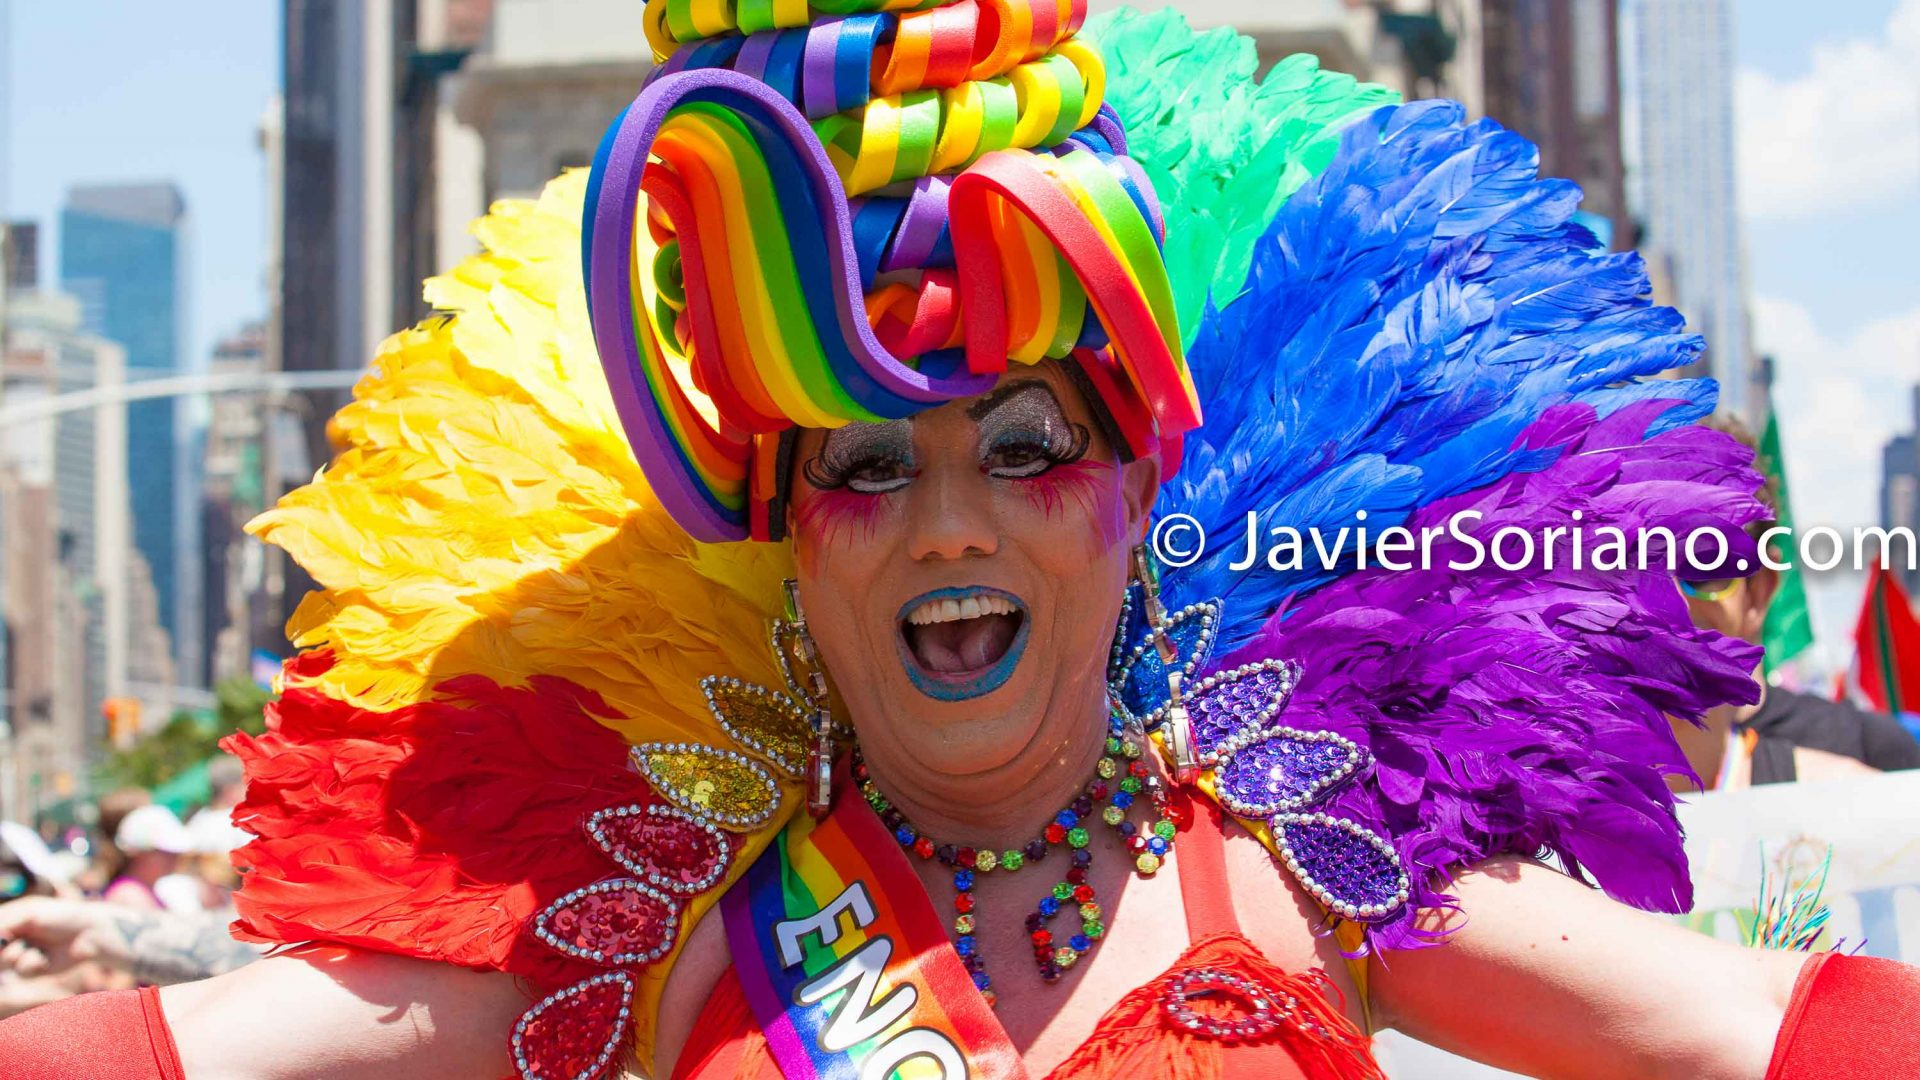 Sunday, June 30th, 2019. New York City - Woman wearing a beautiful costume at the NYC Pride March. The 50th anniversary of the Stonewall Rebellion was on Friday, June 28th, 2019. People from around the world came to New York City to celebrate.